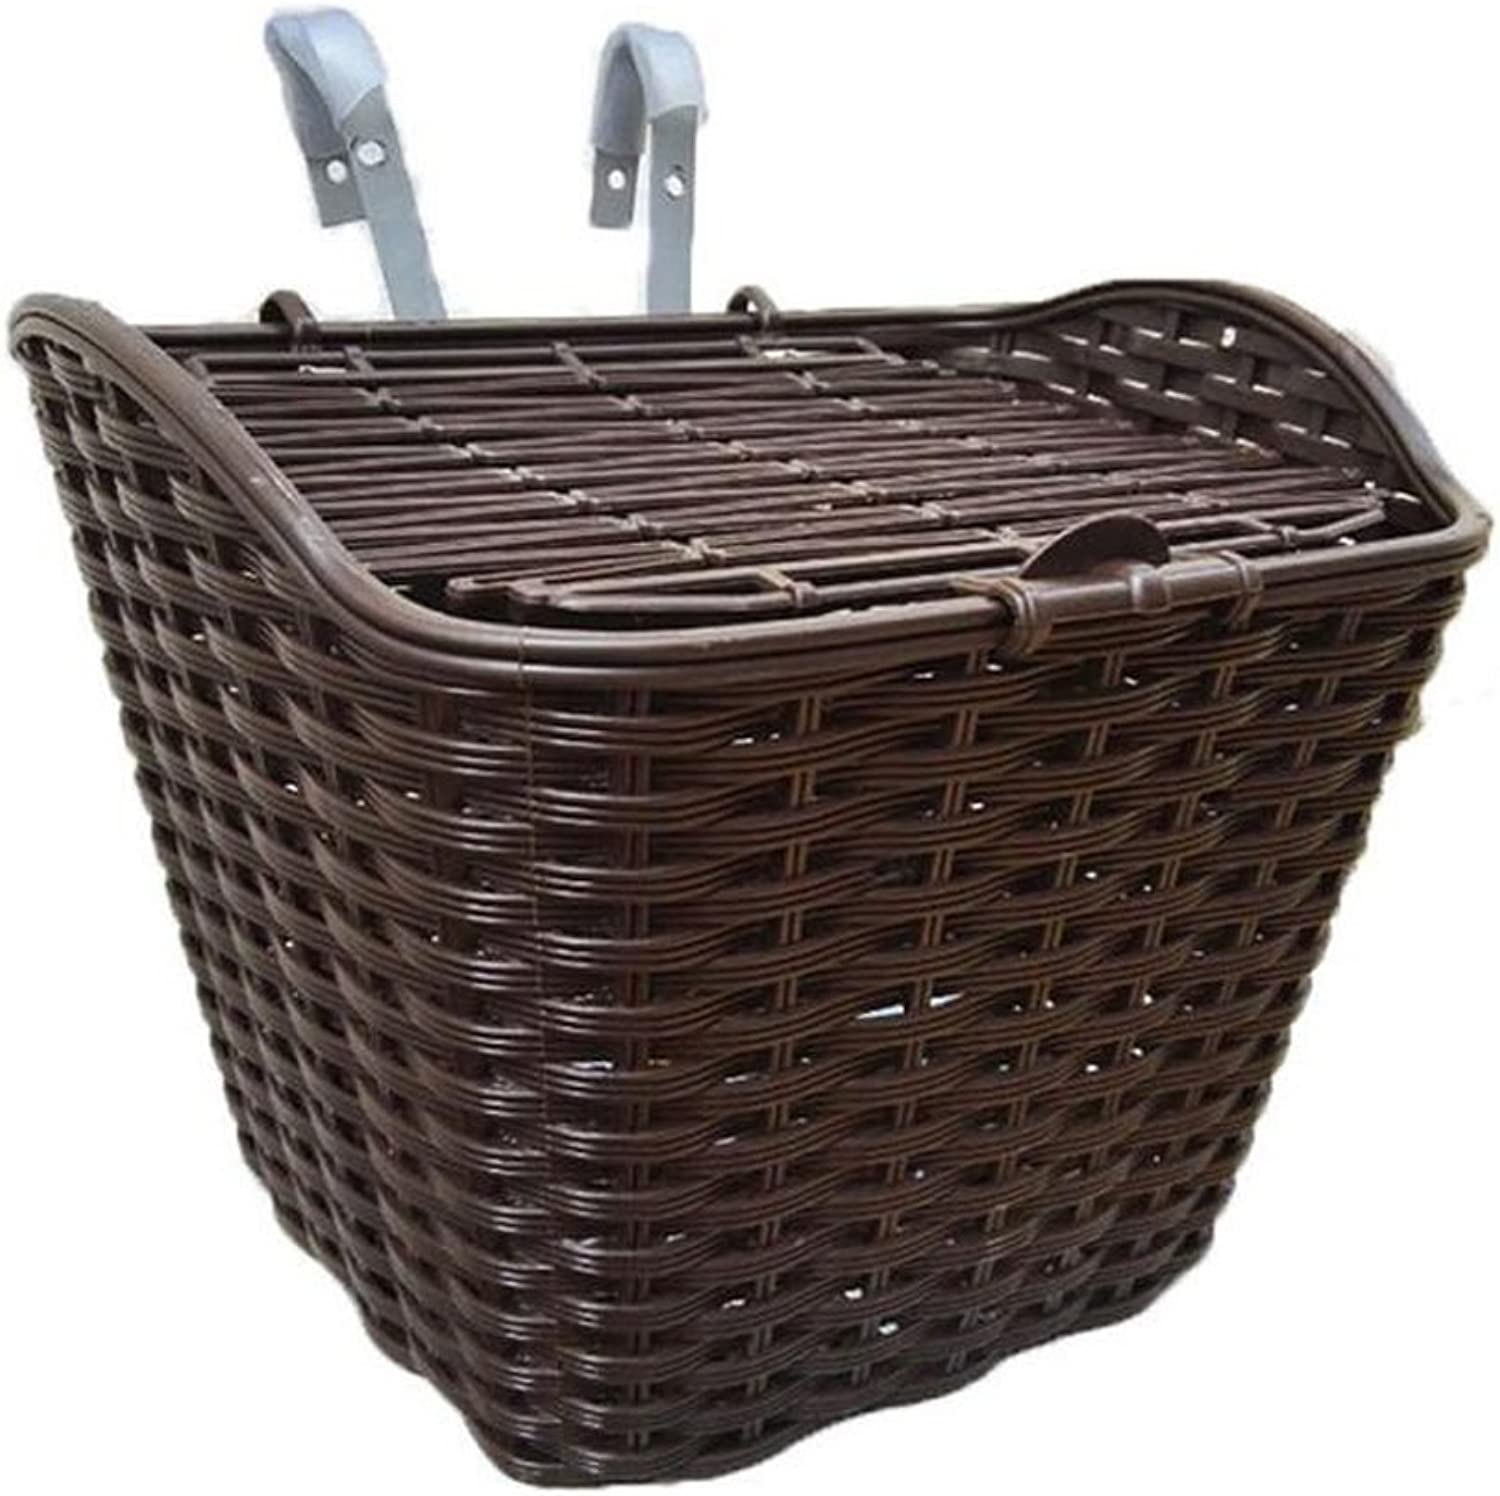 Ideal for Shopping Storage Bicycle Basket Fit for Most Bikes